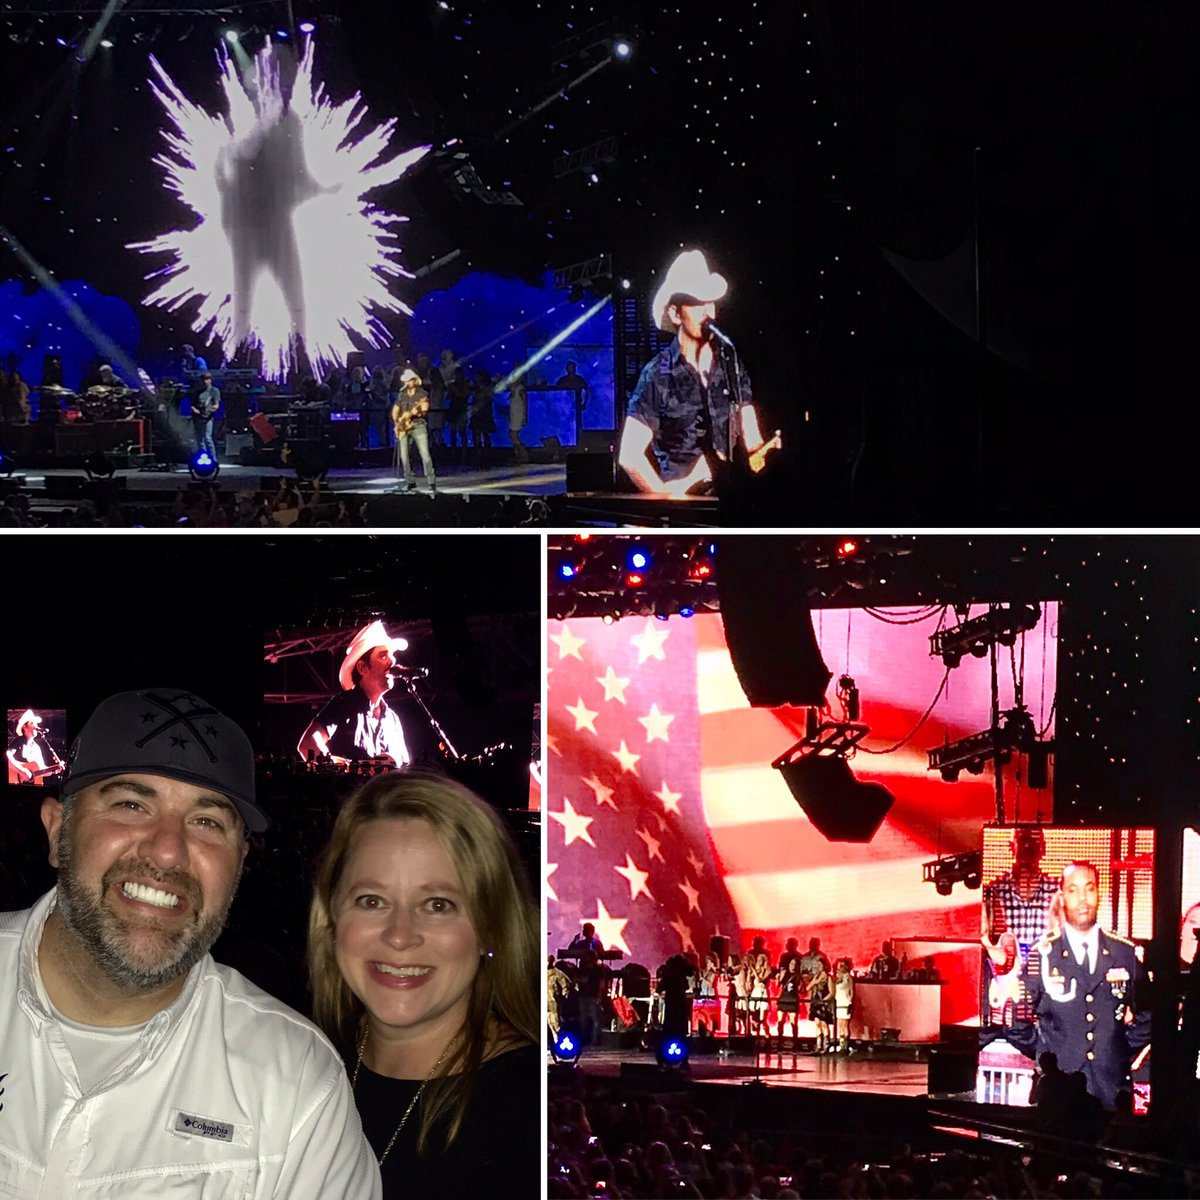 All American Friday Night with my Bride & @BradPaisley at @AmerisBankAmp #MudOnTires<br>http://pic.twitter.com/6DfhupPM1A